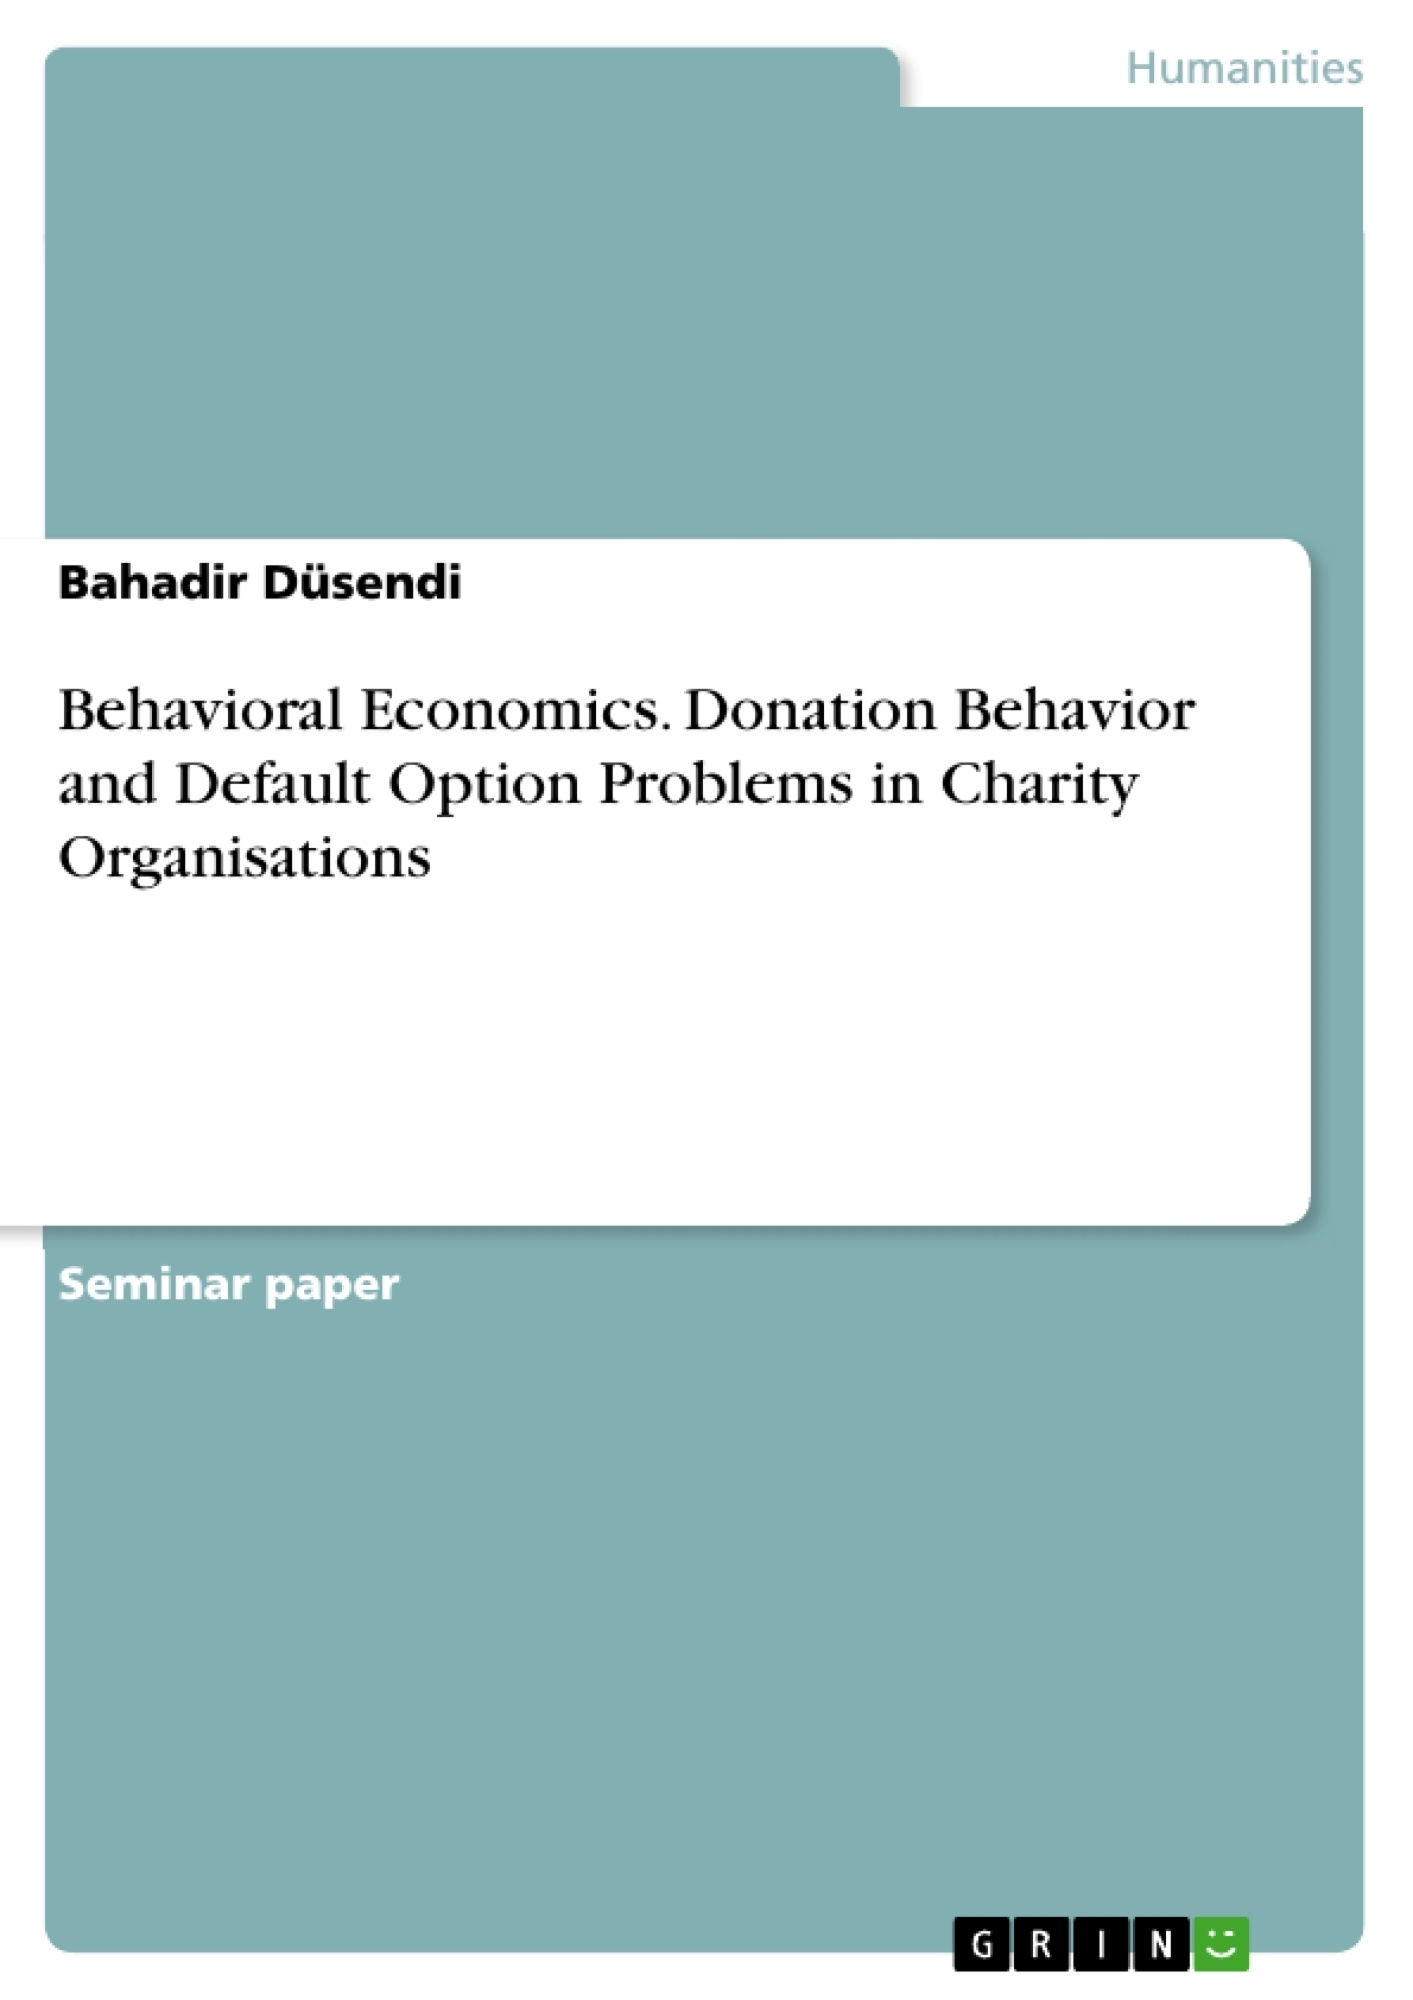 Title: Behavioral Economics. Donation Behavior and Default Option Problems in Charity Organisations